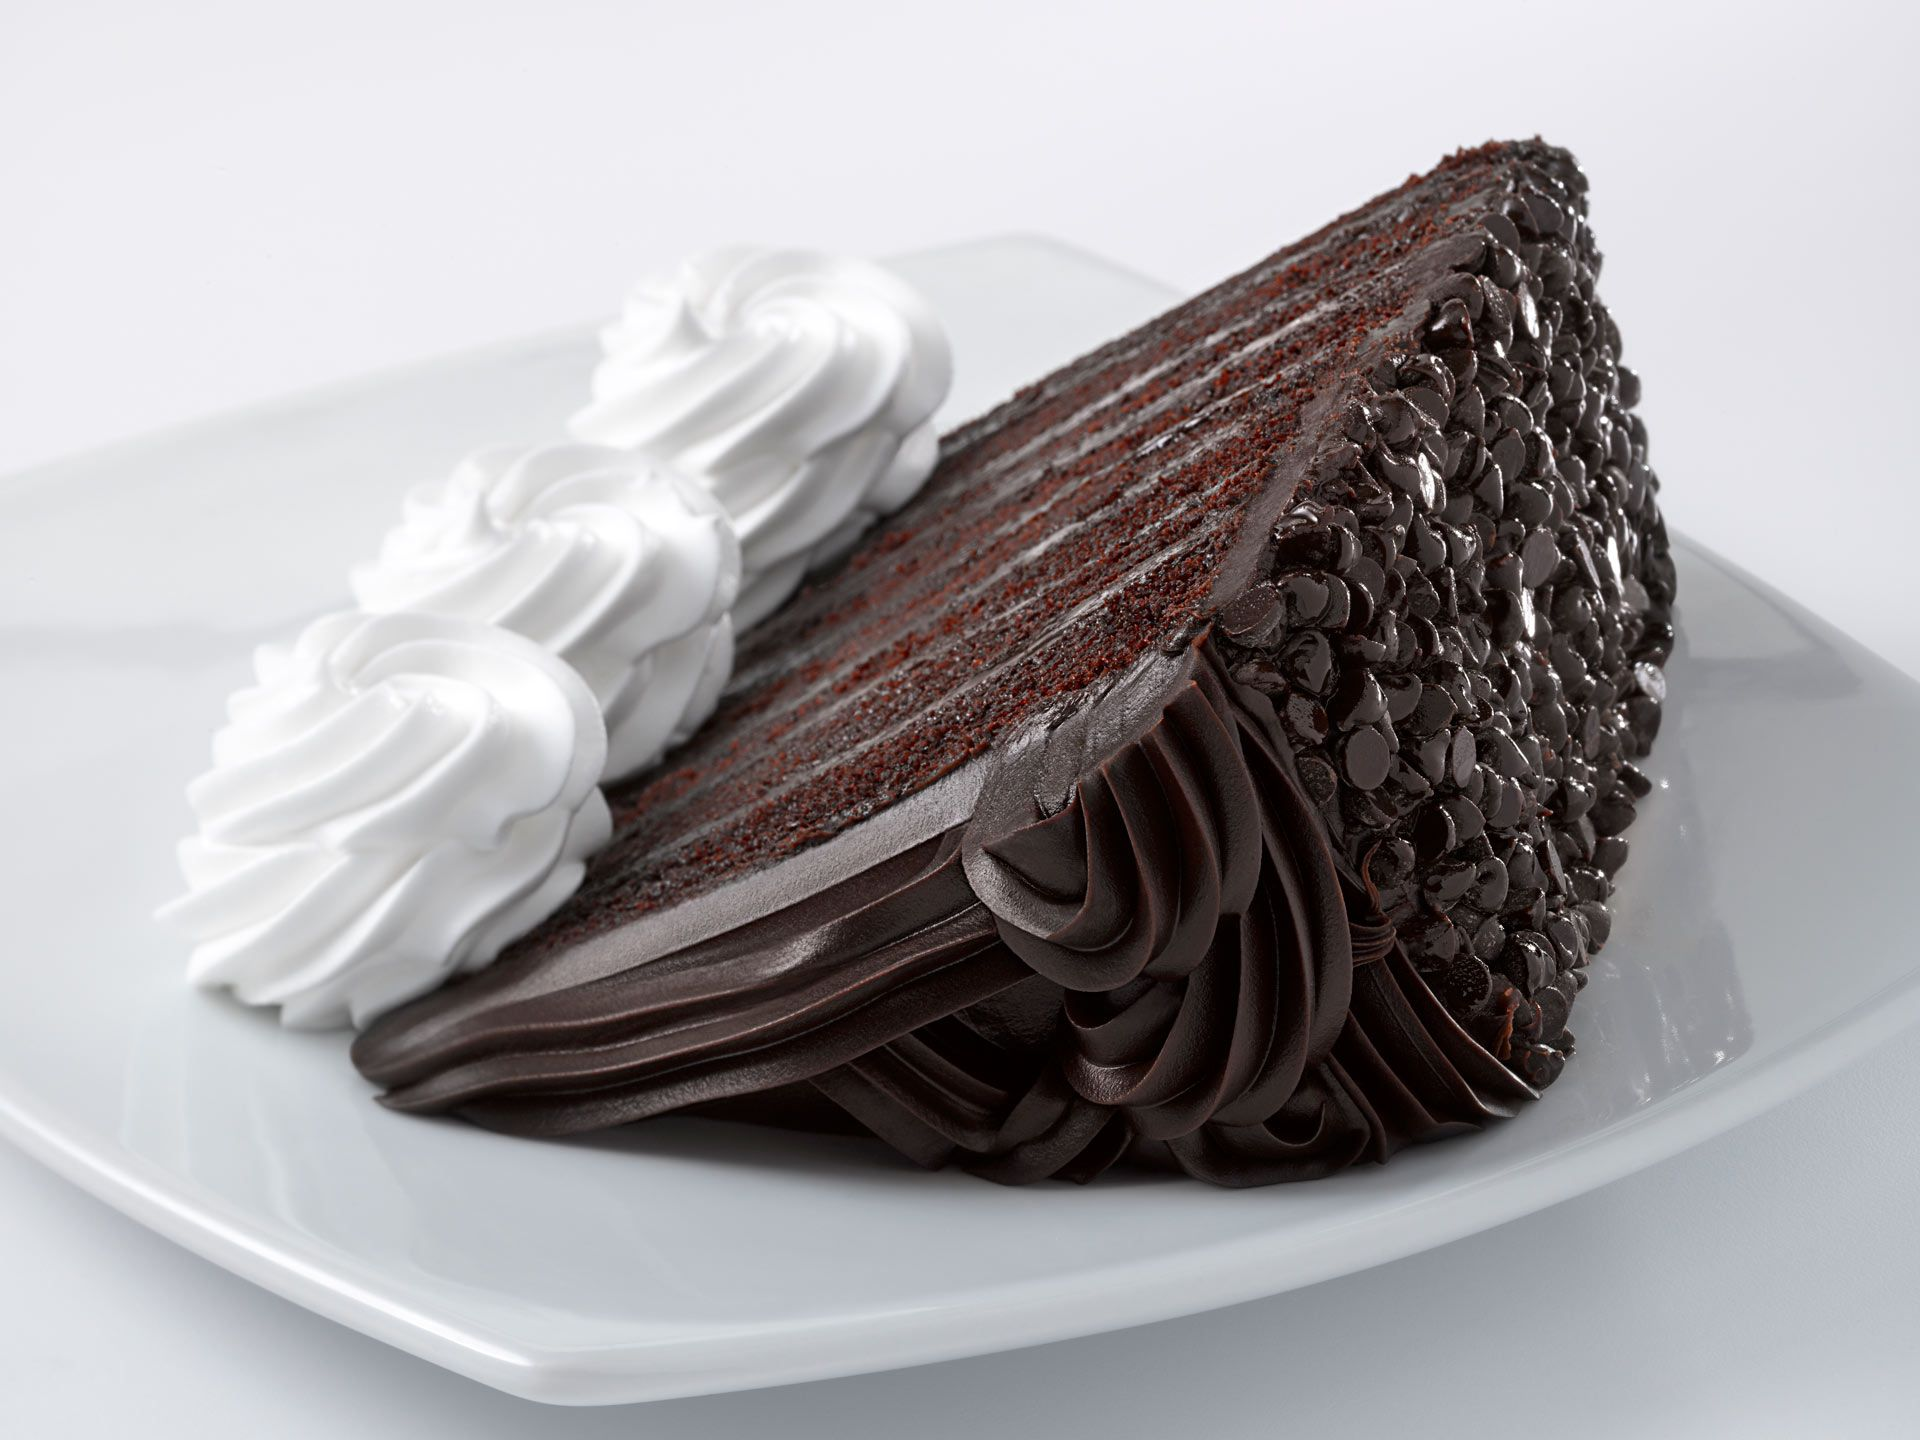 Linda's Fudge Cake from the Cheesecake Factory best cake ever!!!! #cheesecakefactoryrecipes